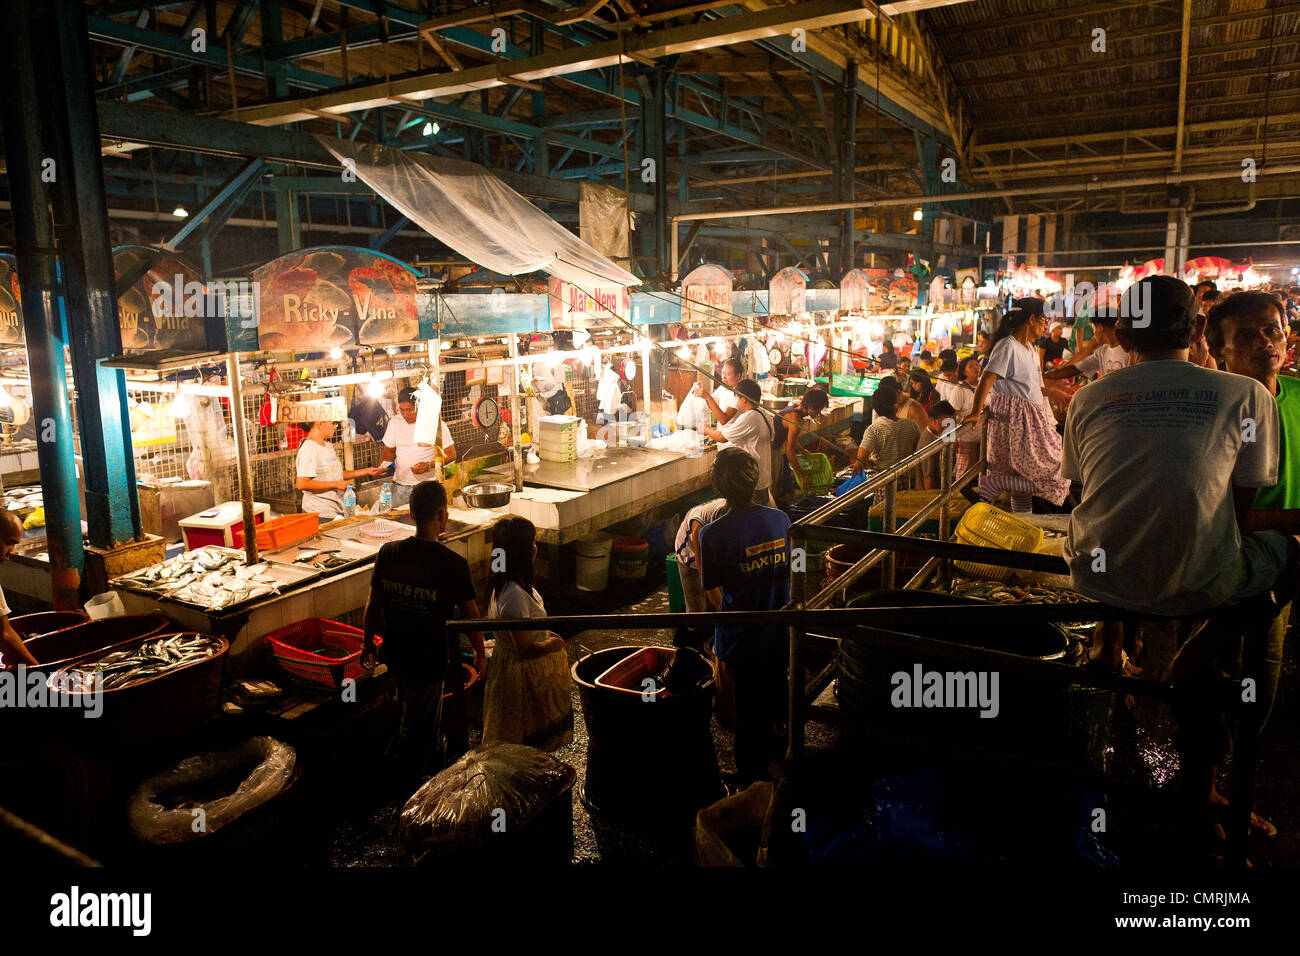 Workers stock their stalls with fresh fish and seafood in the Cubao Farmer's Market, Quezon City, Manila, Philippine - Stock Image